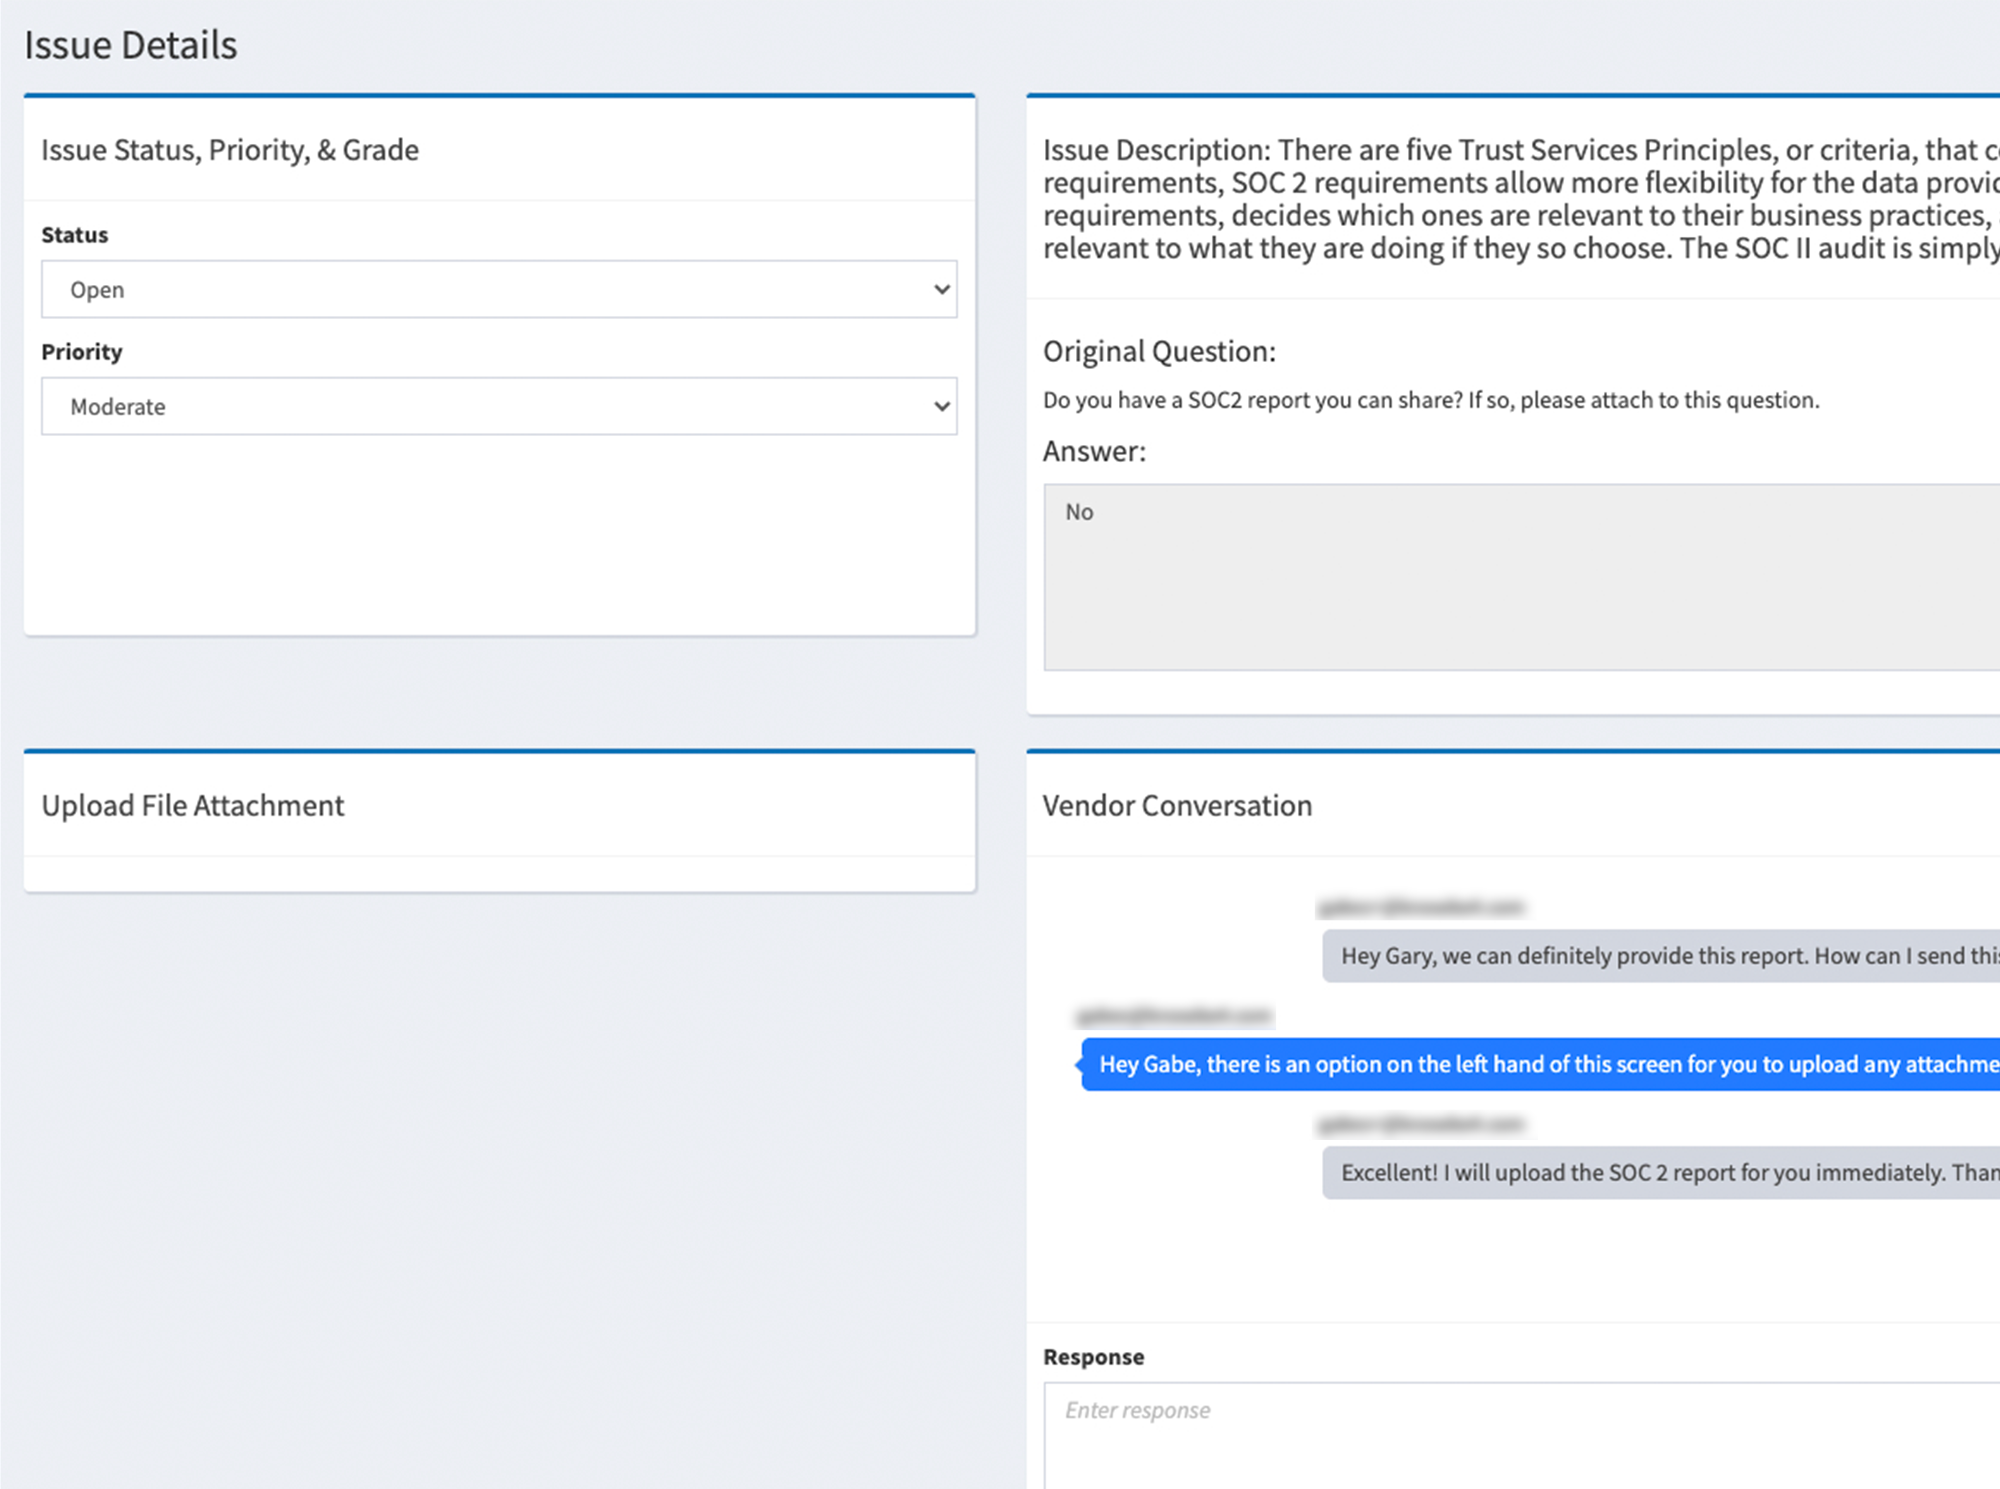 Automated Workflows for Requirements, Remediation and Mitigation